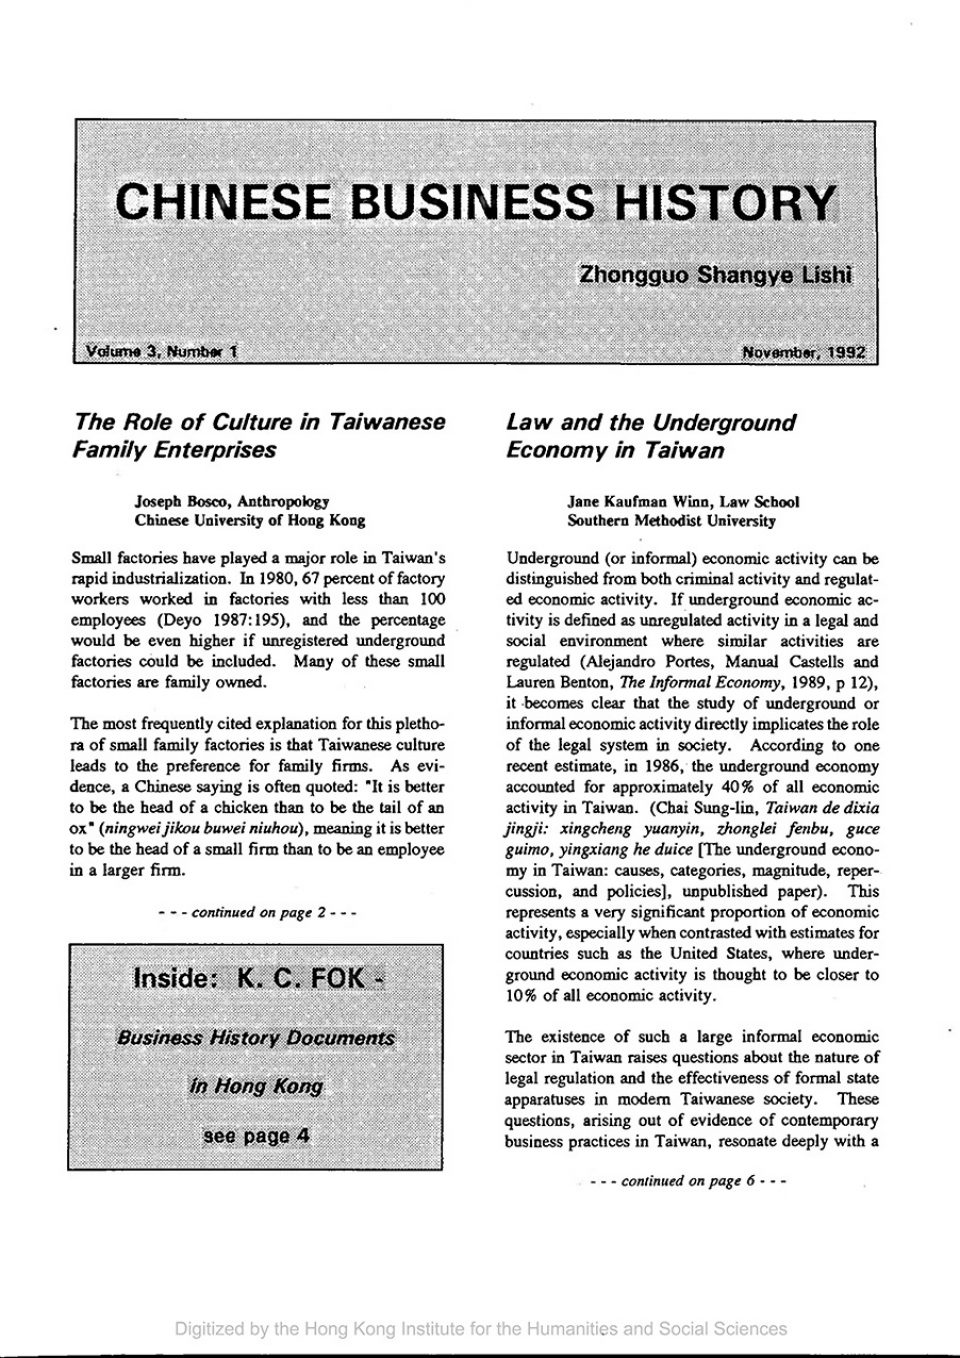 Cover of Chinese Business History Journal Volume 3, Number 1